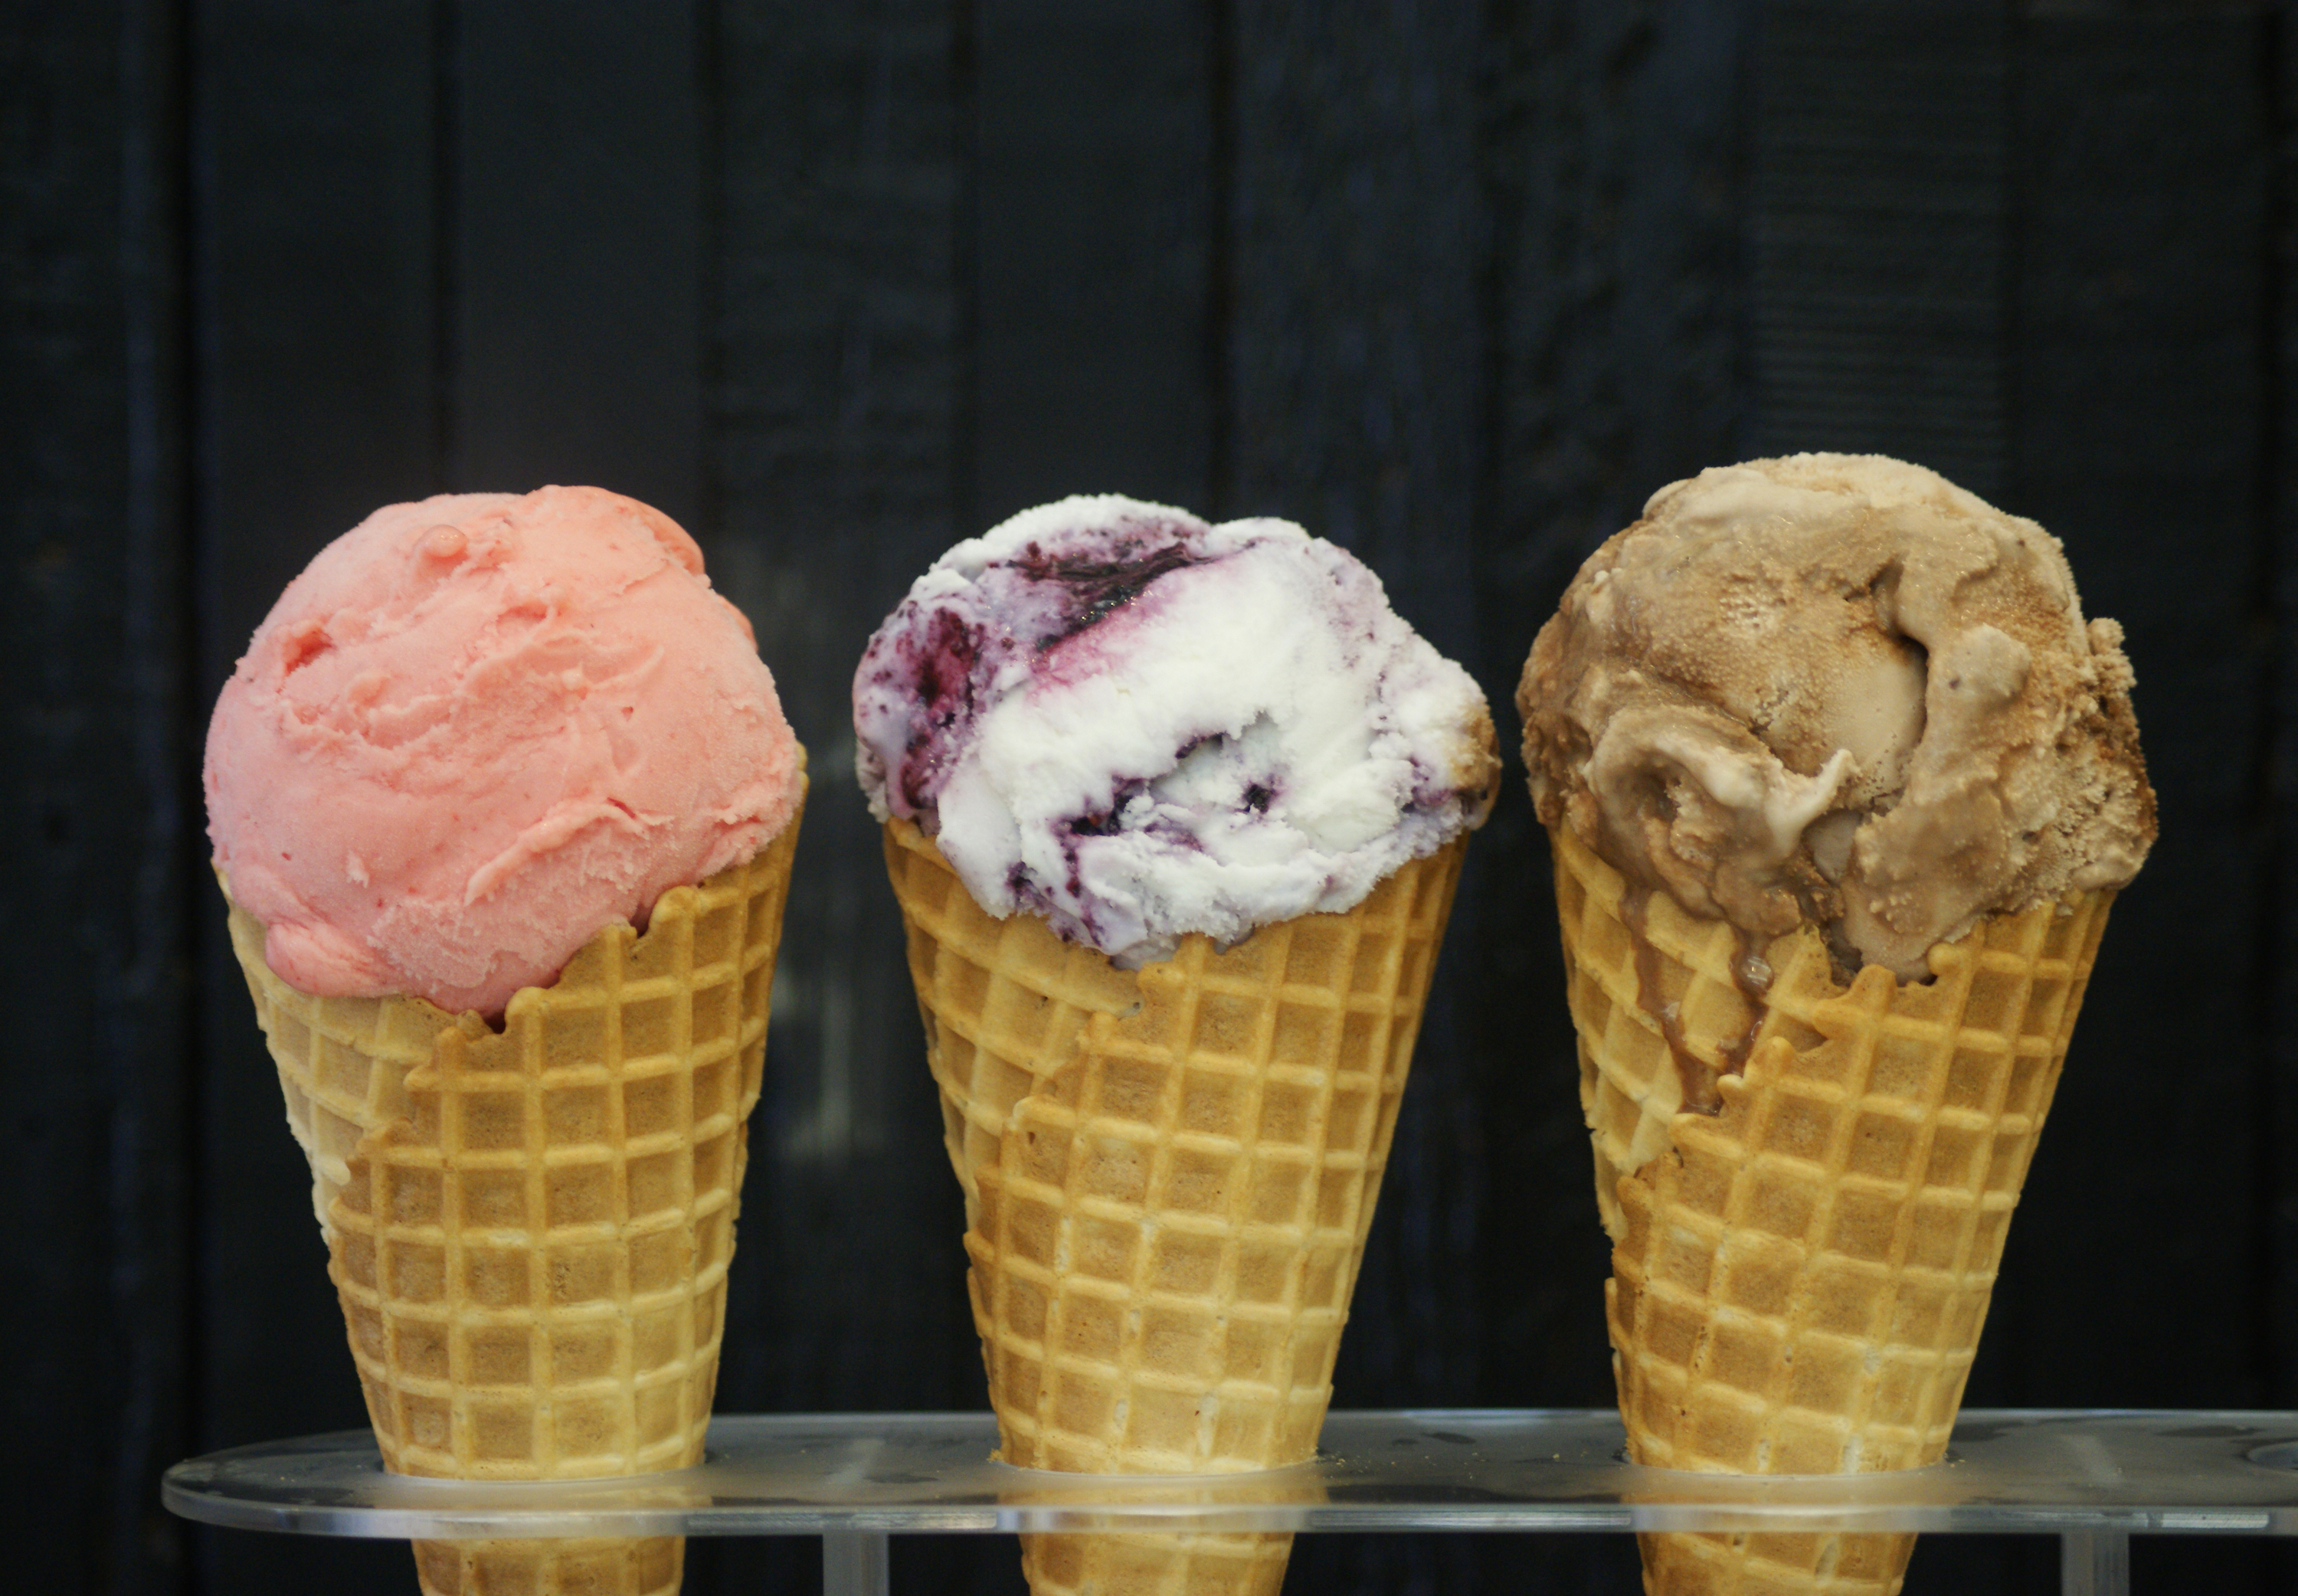 AtticusIceCream Atticus Creamery & Pies Opens a 2nd Location near The Grove